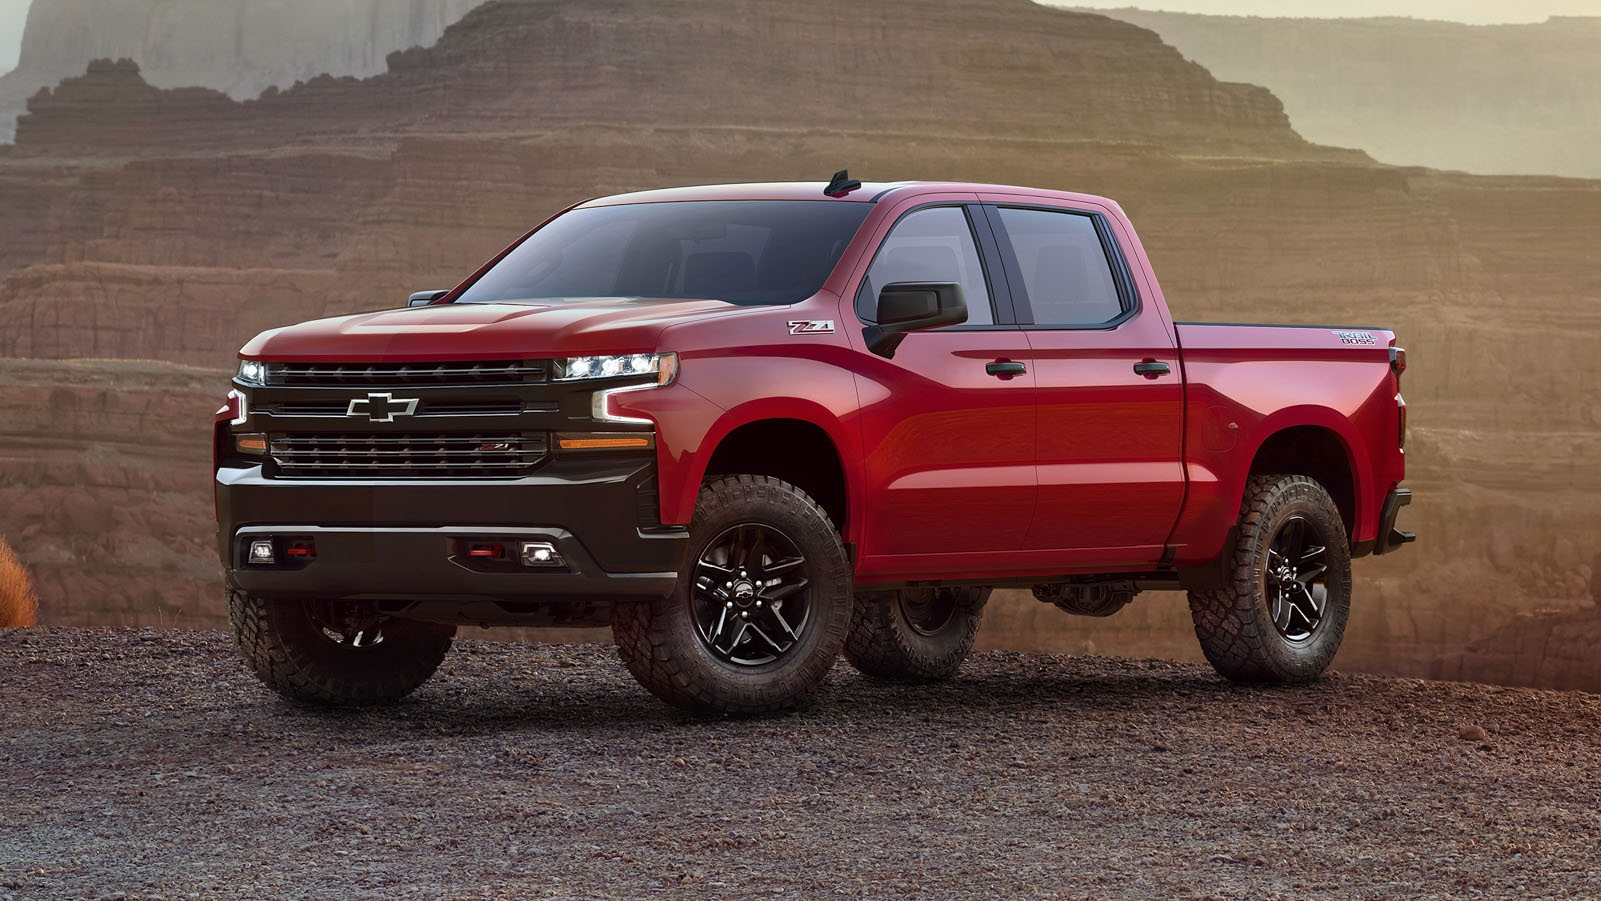 New Vs Old Exterior Updates To The 2019 Chevrolet Silverado Top Chevy Truck Tailgates Speed